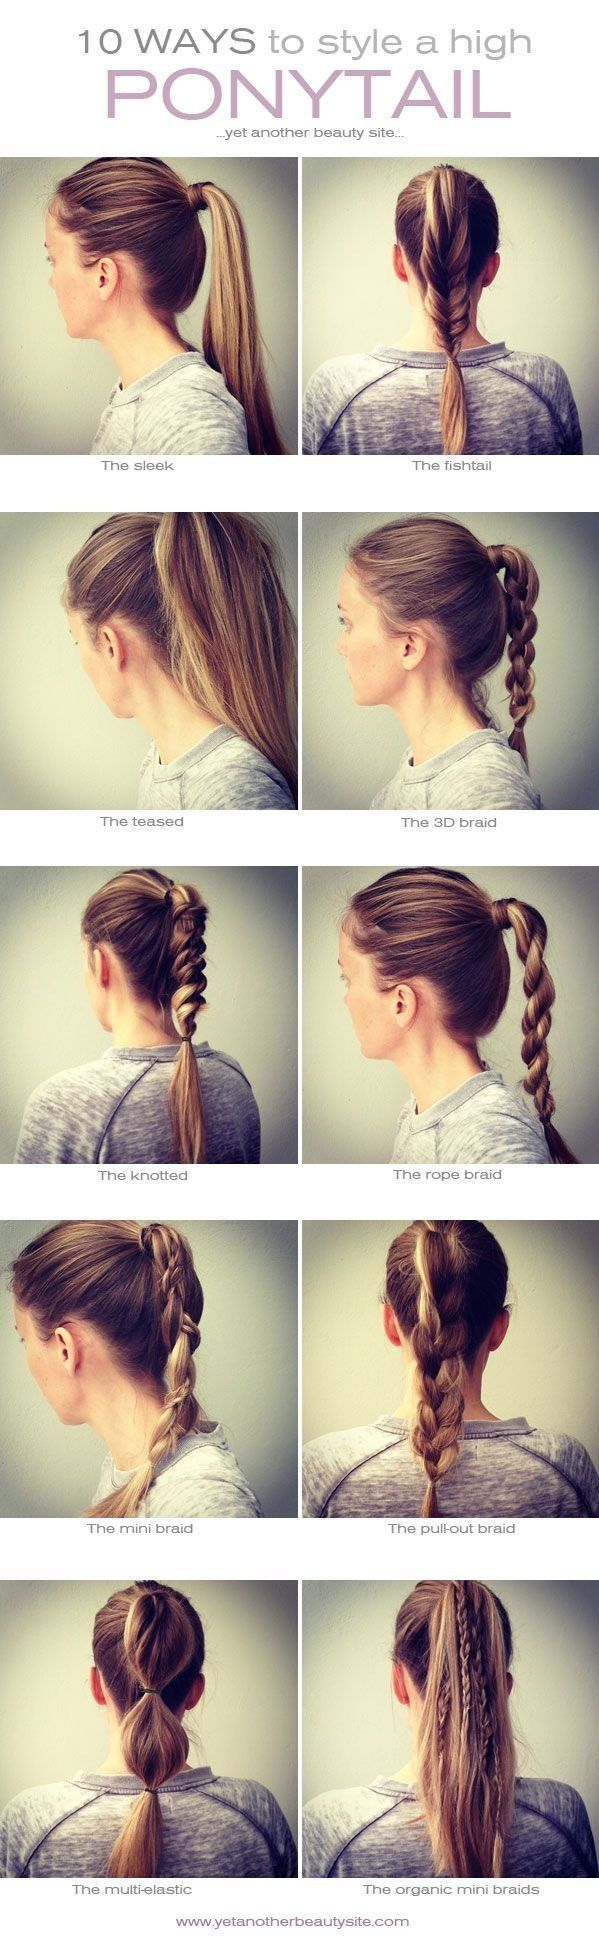 Cute hairstyle.